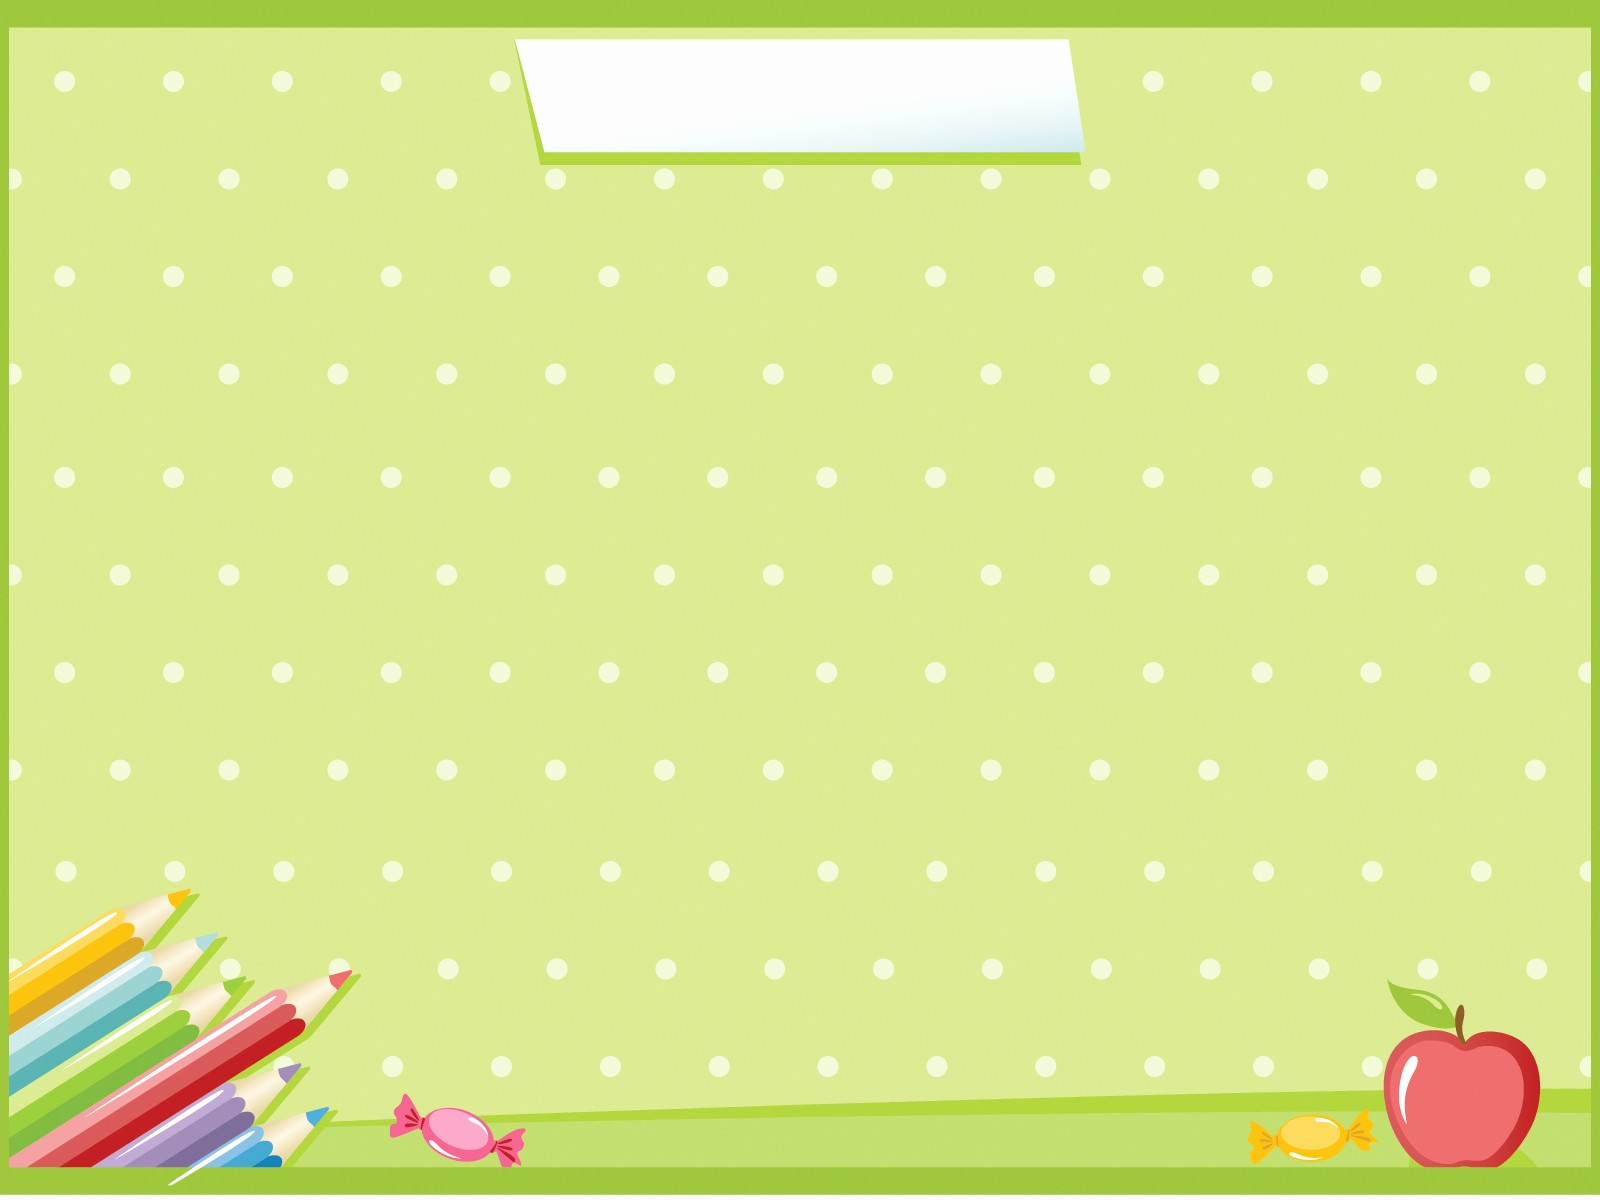 Cute School Backgrounds for Powerpoint New School Days Powerpoint Templates Education Lime orange